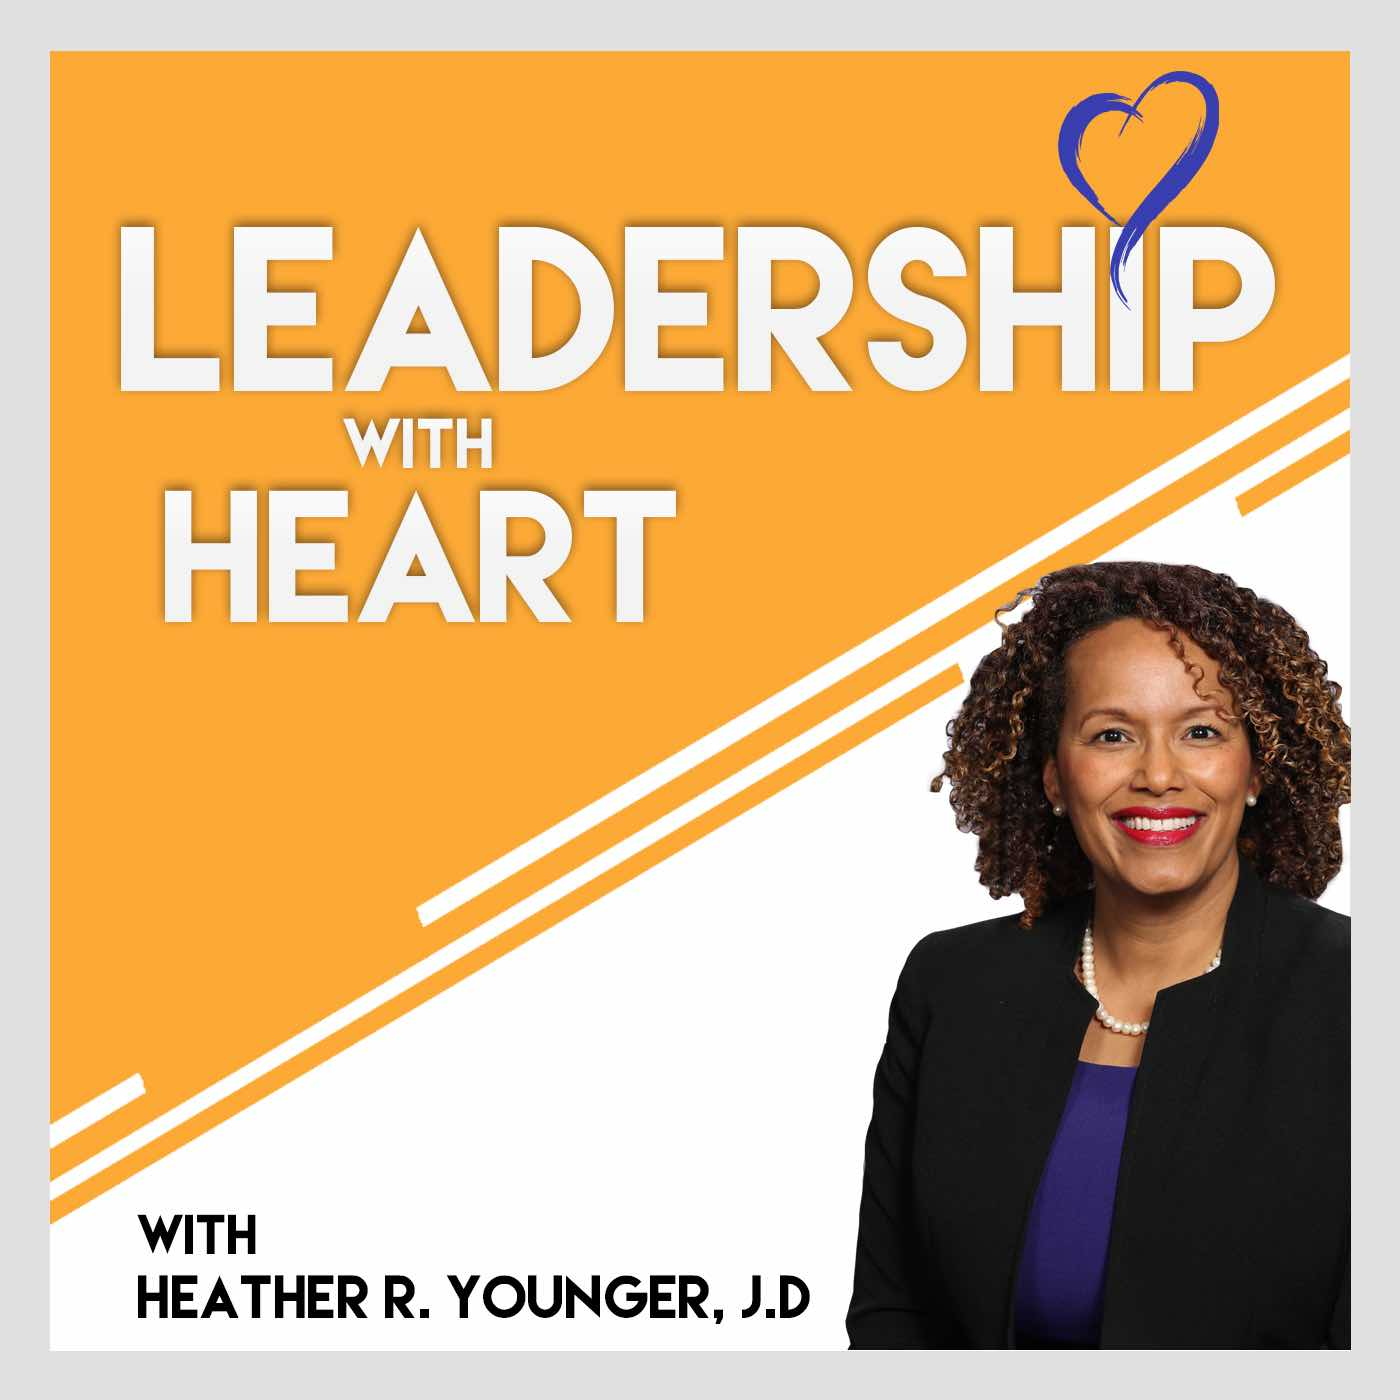 125: Leaders With Heart Course Correct Themselves And Others With Care